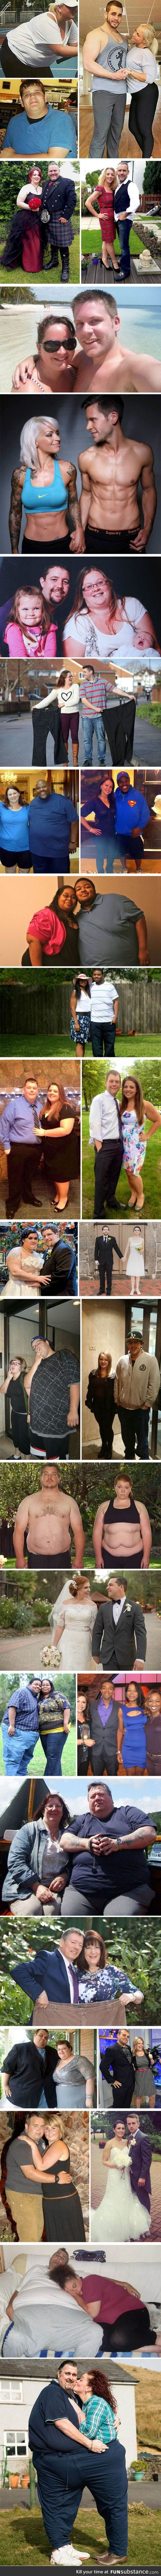 Couples losing weight together